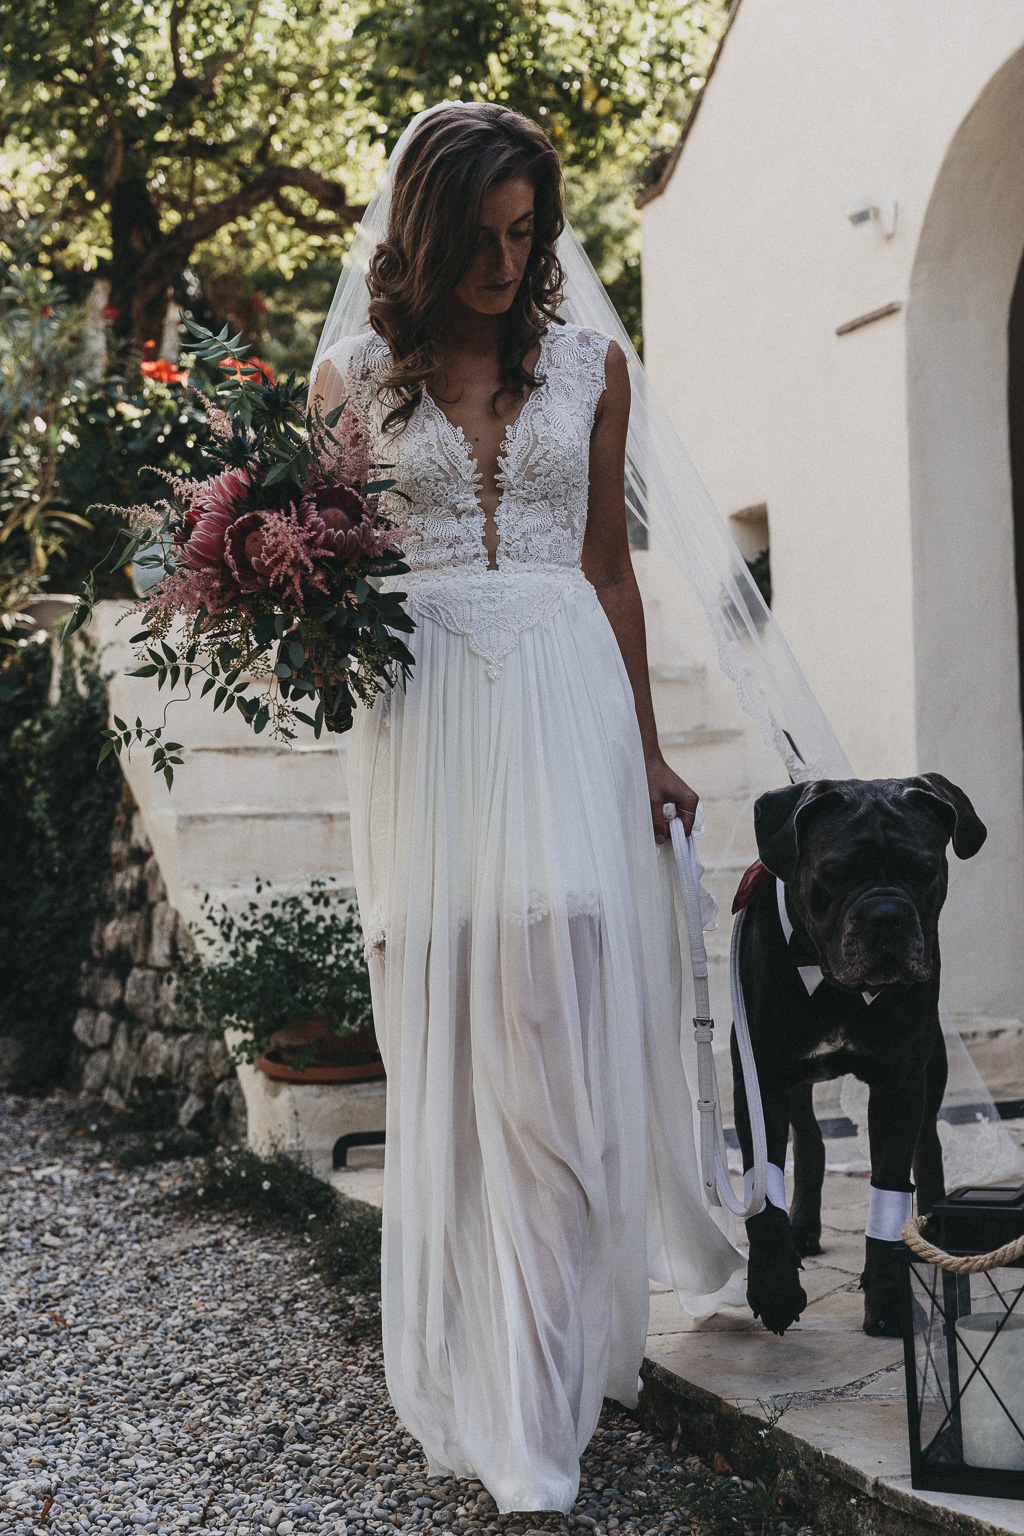 Bride and a dog